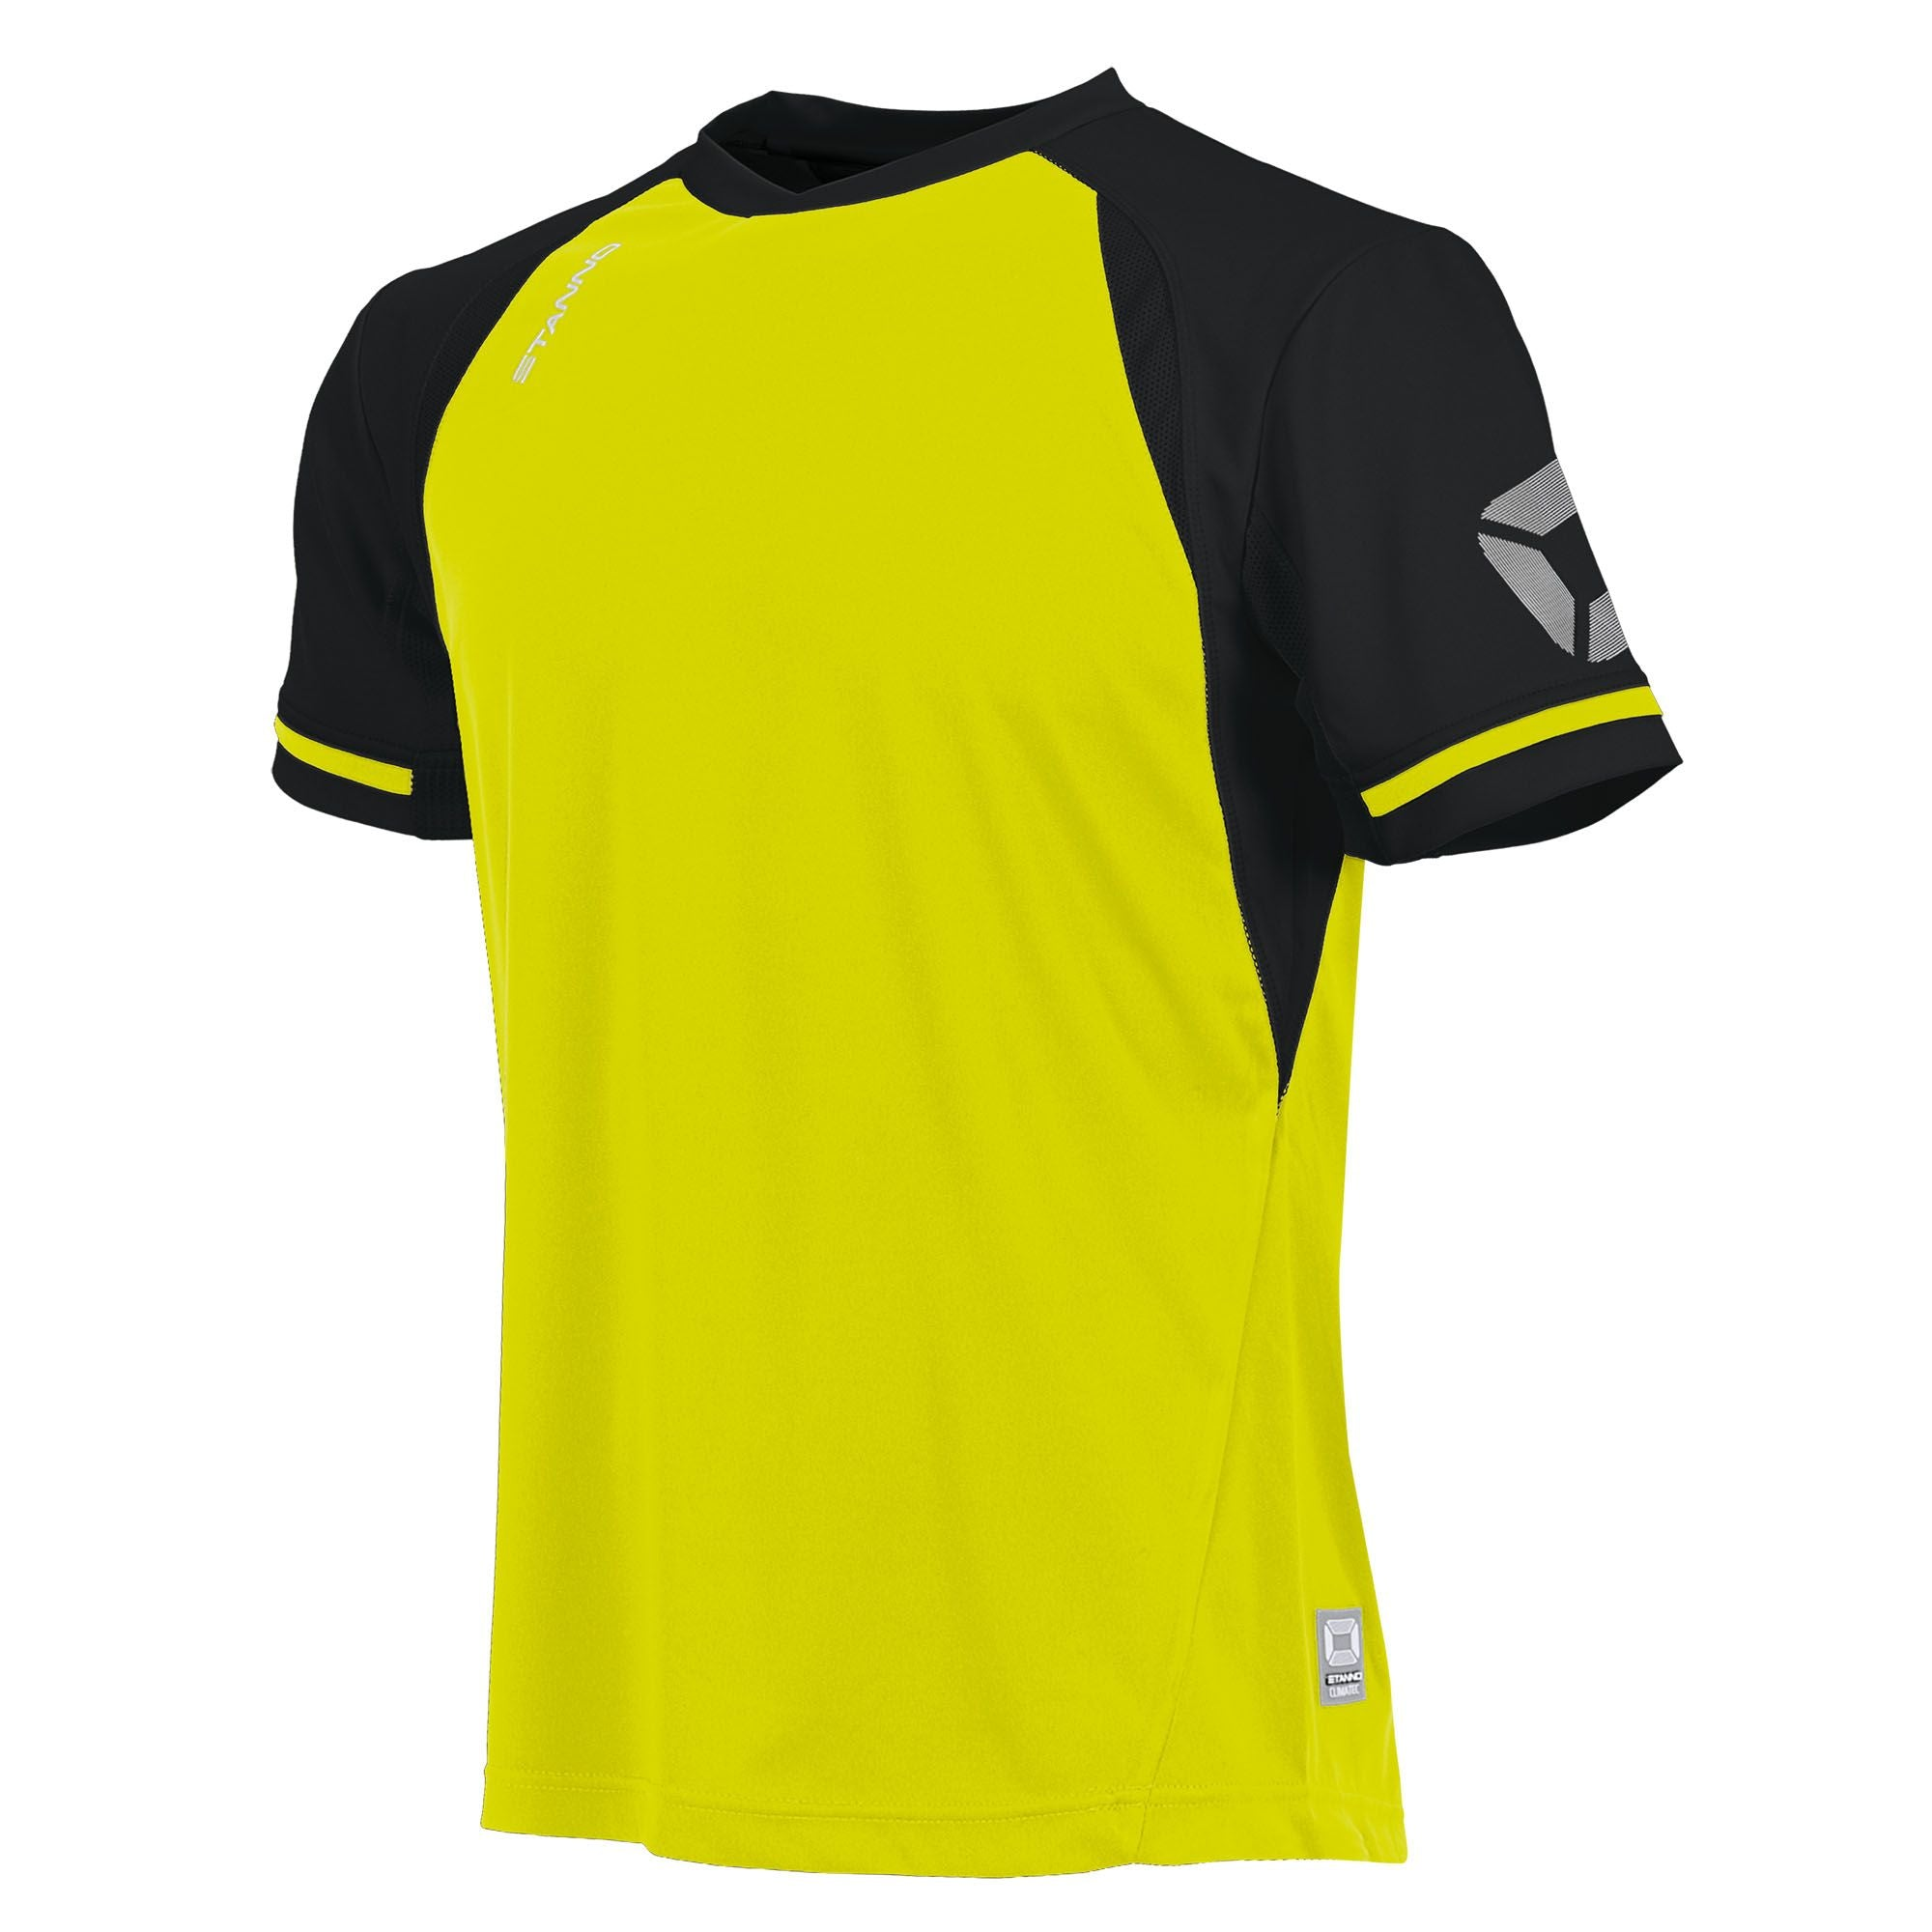 short sleeved Stanno Liga shirt in neon yellow with contrast black sleeves and collar, Stadium logo on the sleeve.